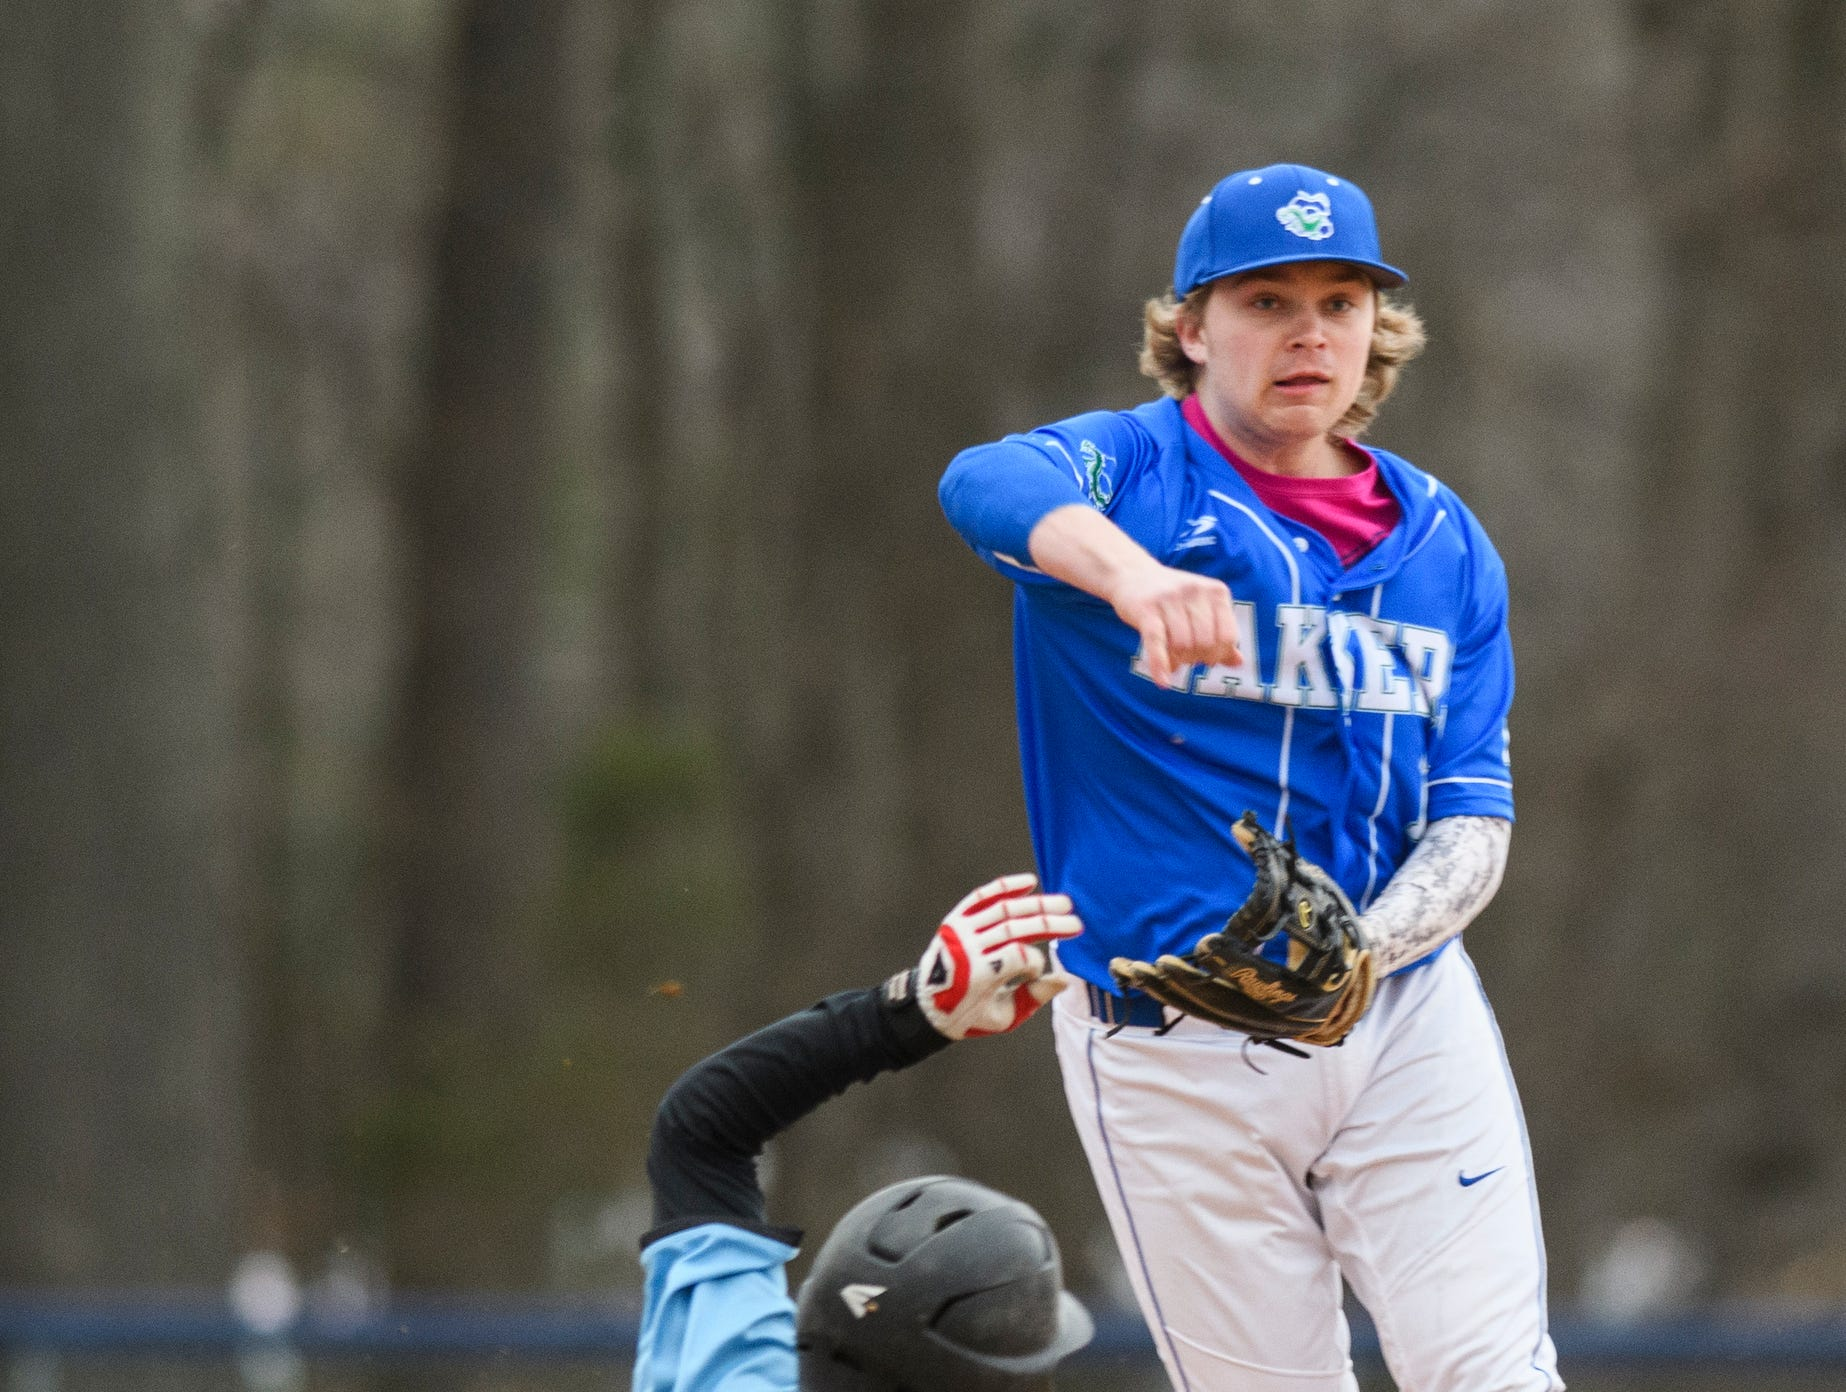 Colchester short stop Eben Provost (10) throws to first base for the double play during the boys baseball game between the South Burlington Wolves and the Colchester Lakers at Colchester high school on Thursday afternoon April 18, 2019 in Colchester, Vermont.